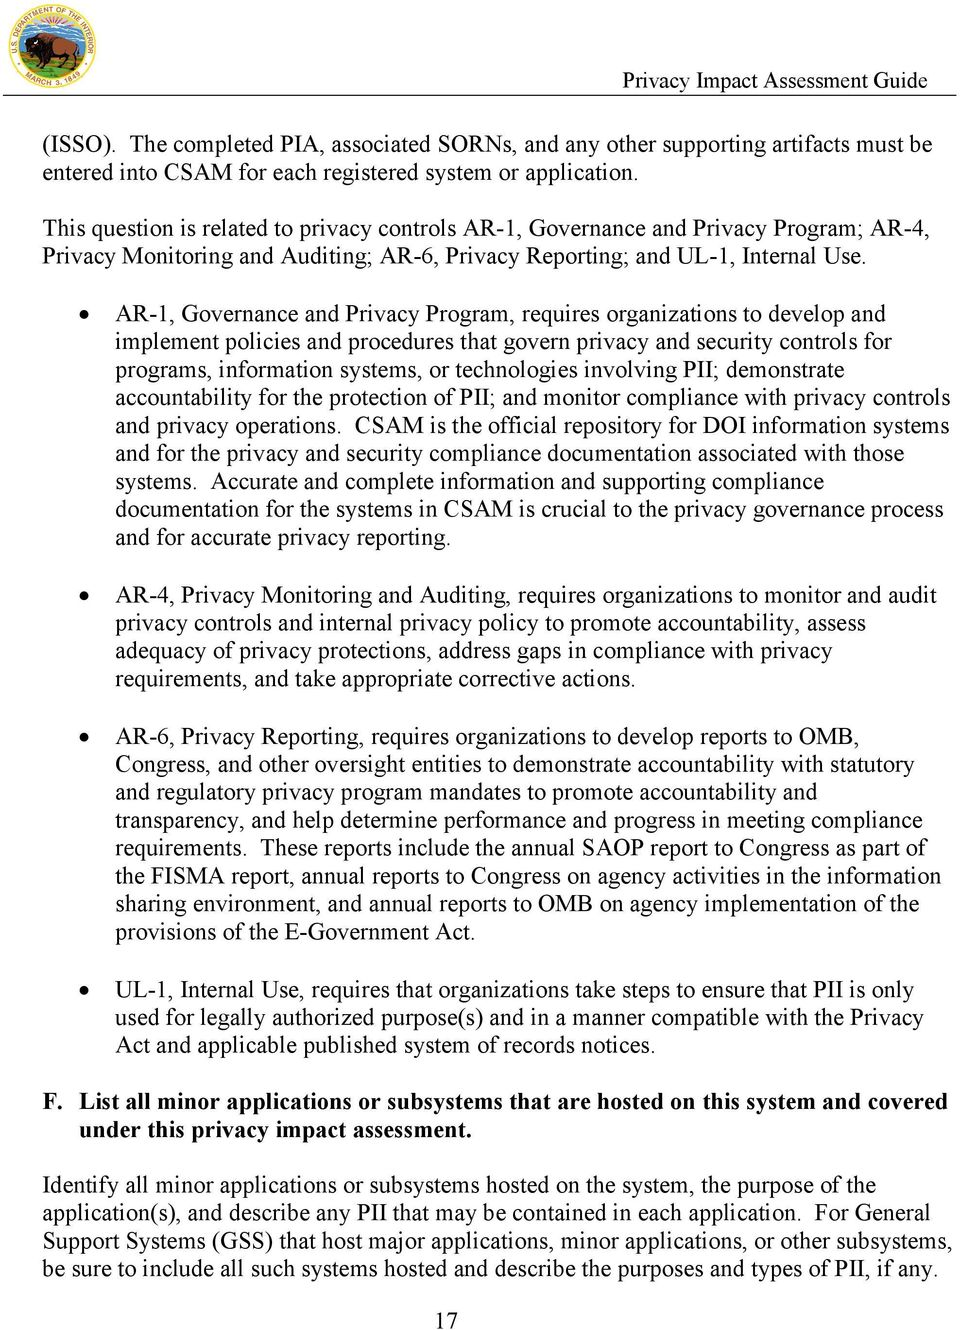 AR-1, Governance and Privacy Program, requires organizations to develop and implement policies and procedures that govern privacy and security controls for programs, information systems, or